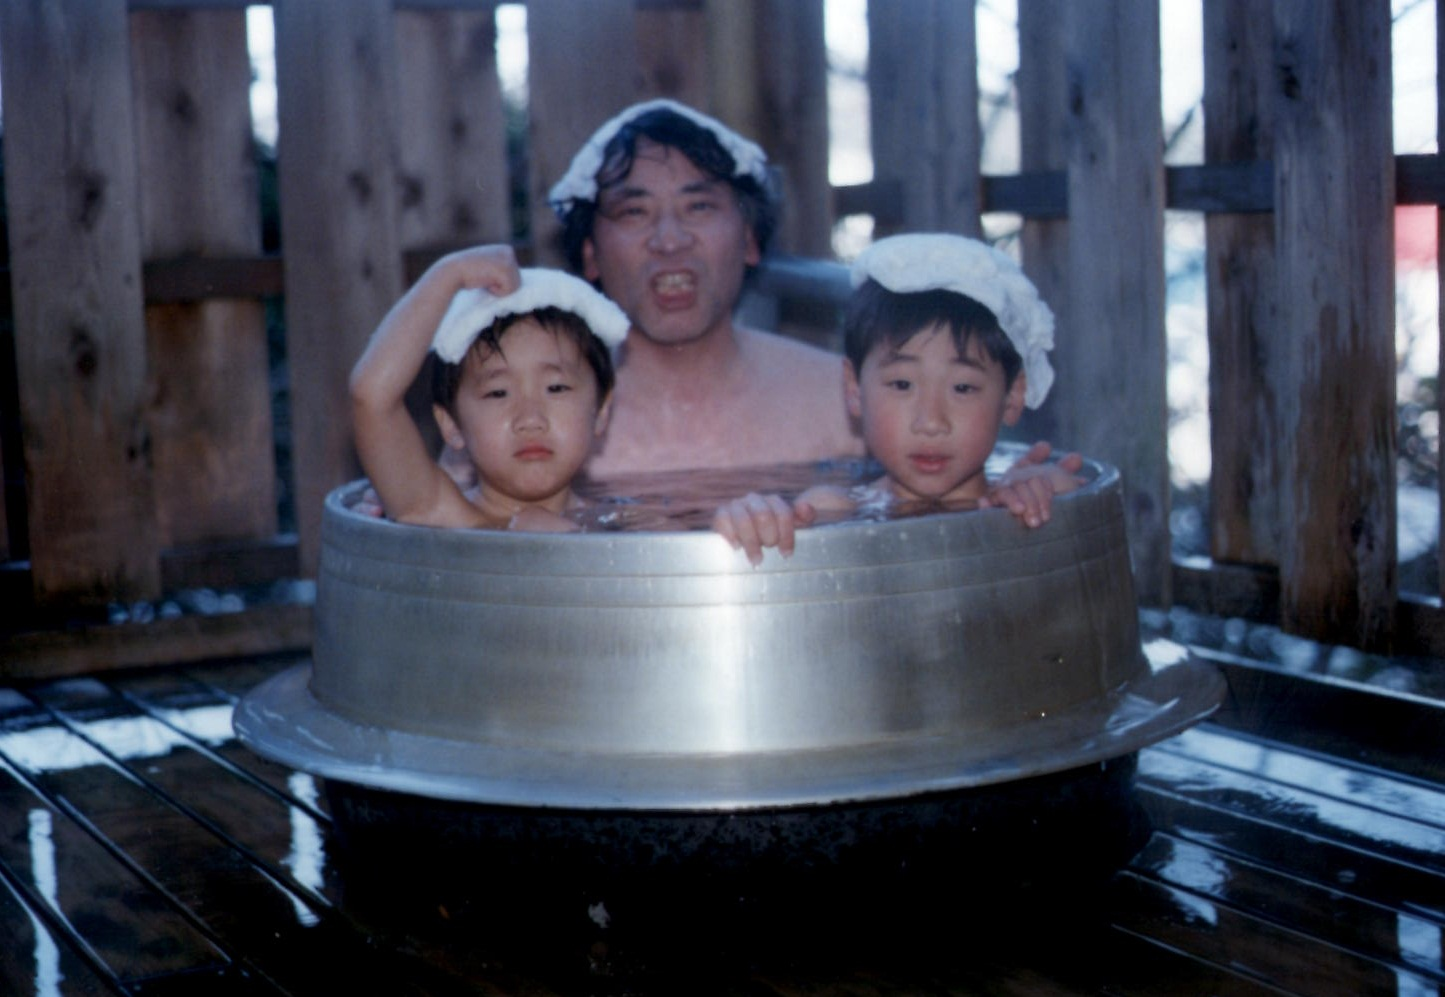 Onsen (Hot Spring) Addict in Japan: What is a Goemonburo, 五右衛門 ...